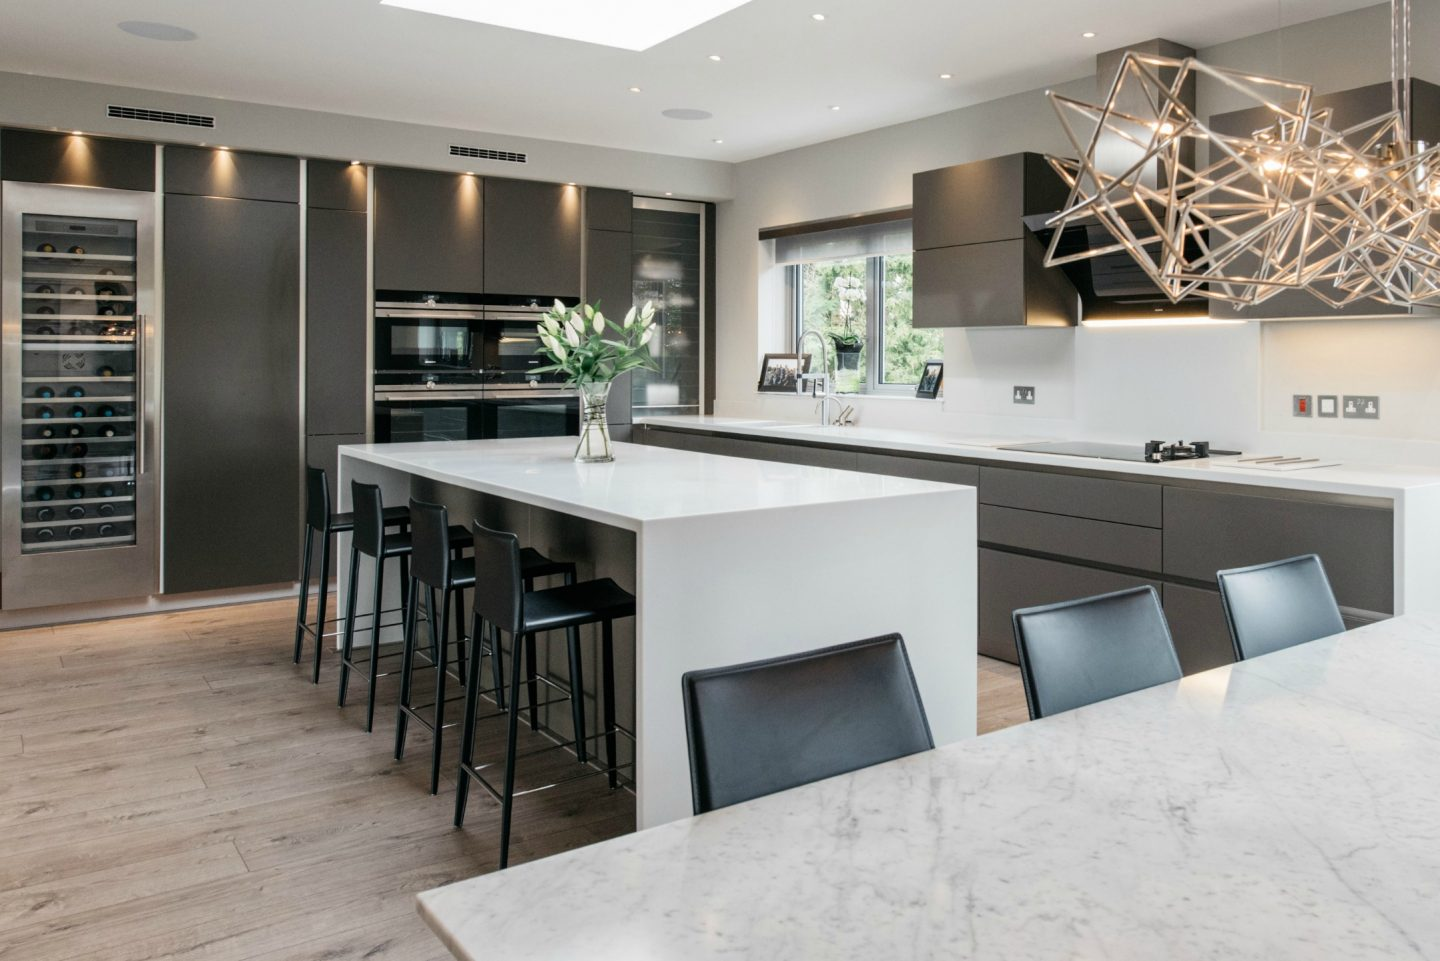 4 Principles For Creating The Perfect Kitchen